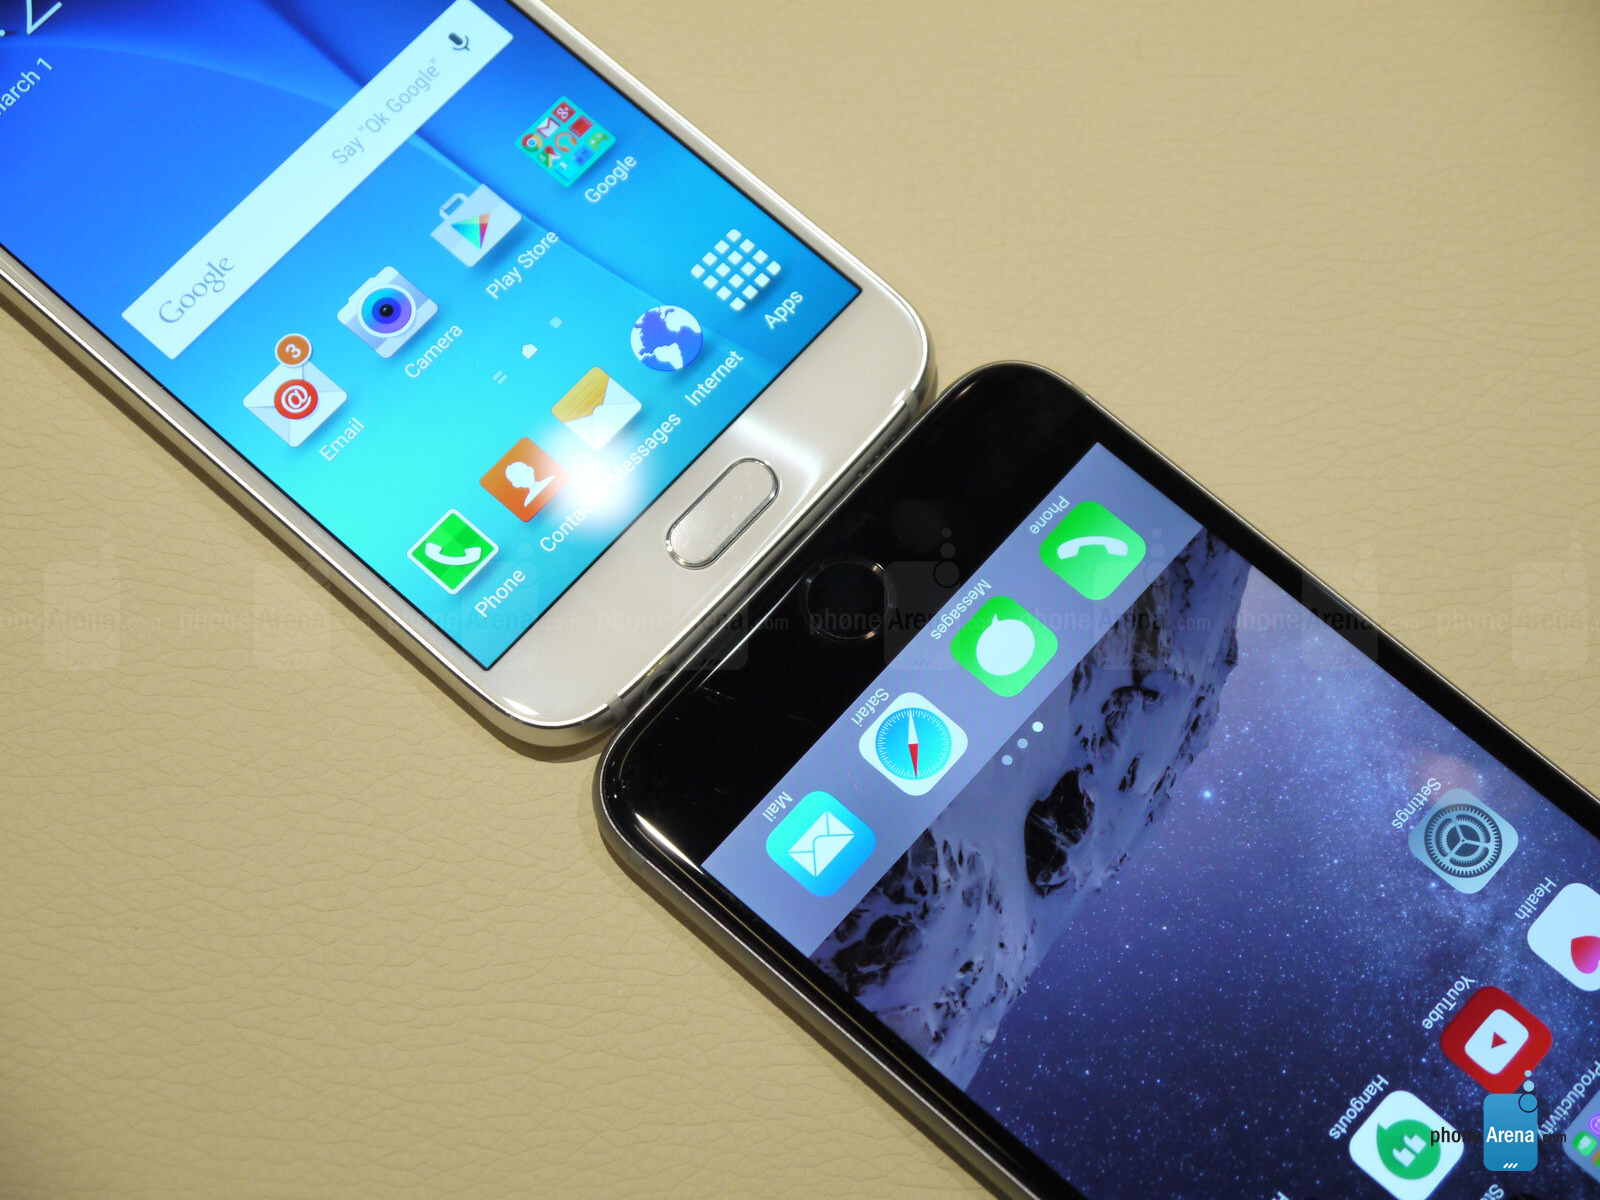 iPhone 6 vs Samsung Galaxy S6 Plus